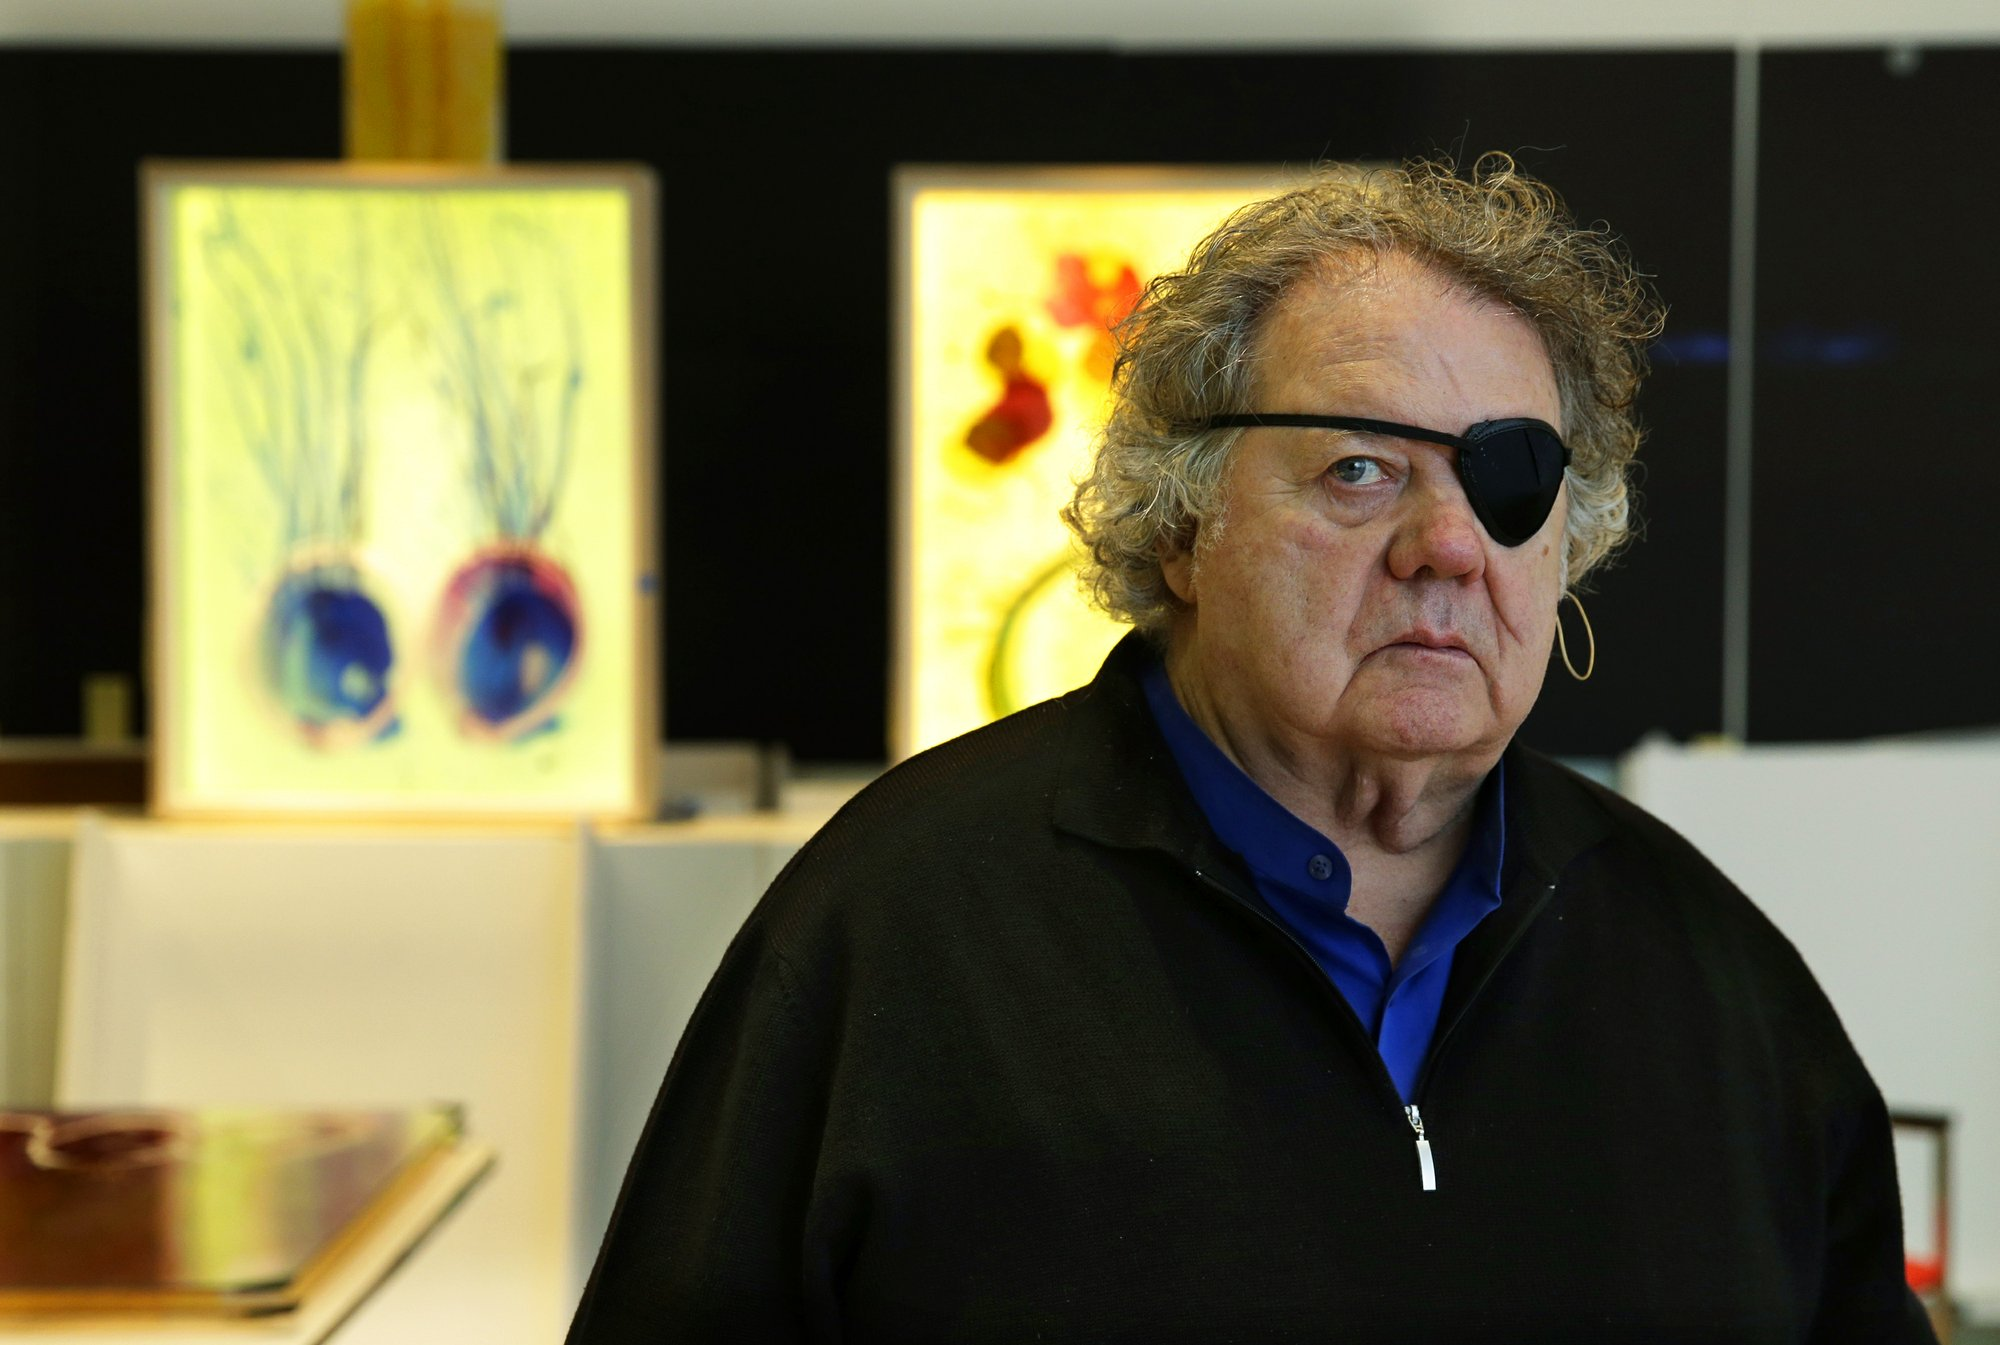 At 75 Dale Chihuly Discusses Struggles With Mental Health